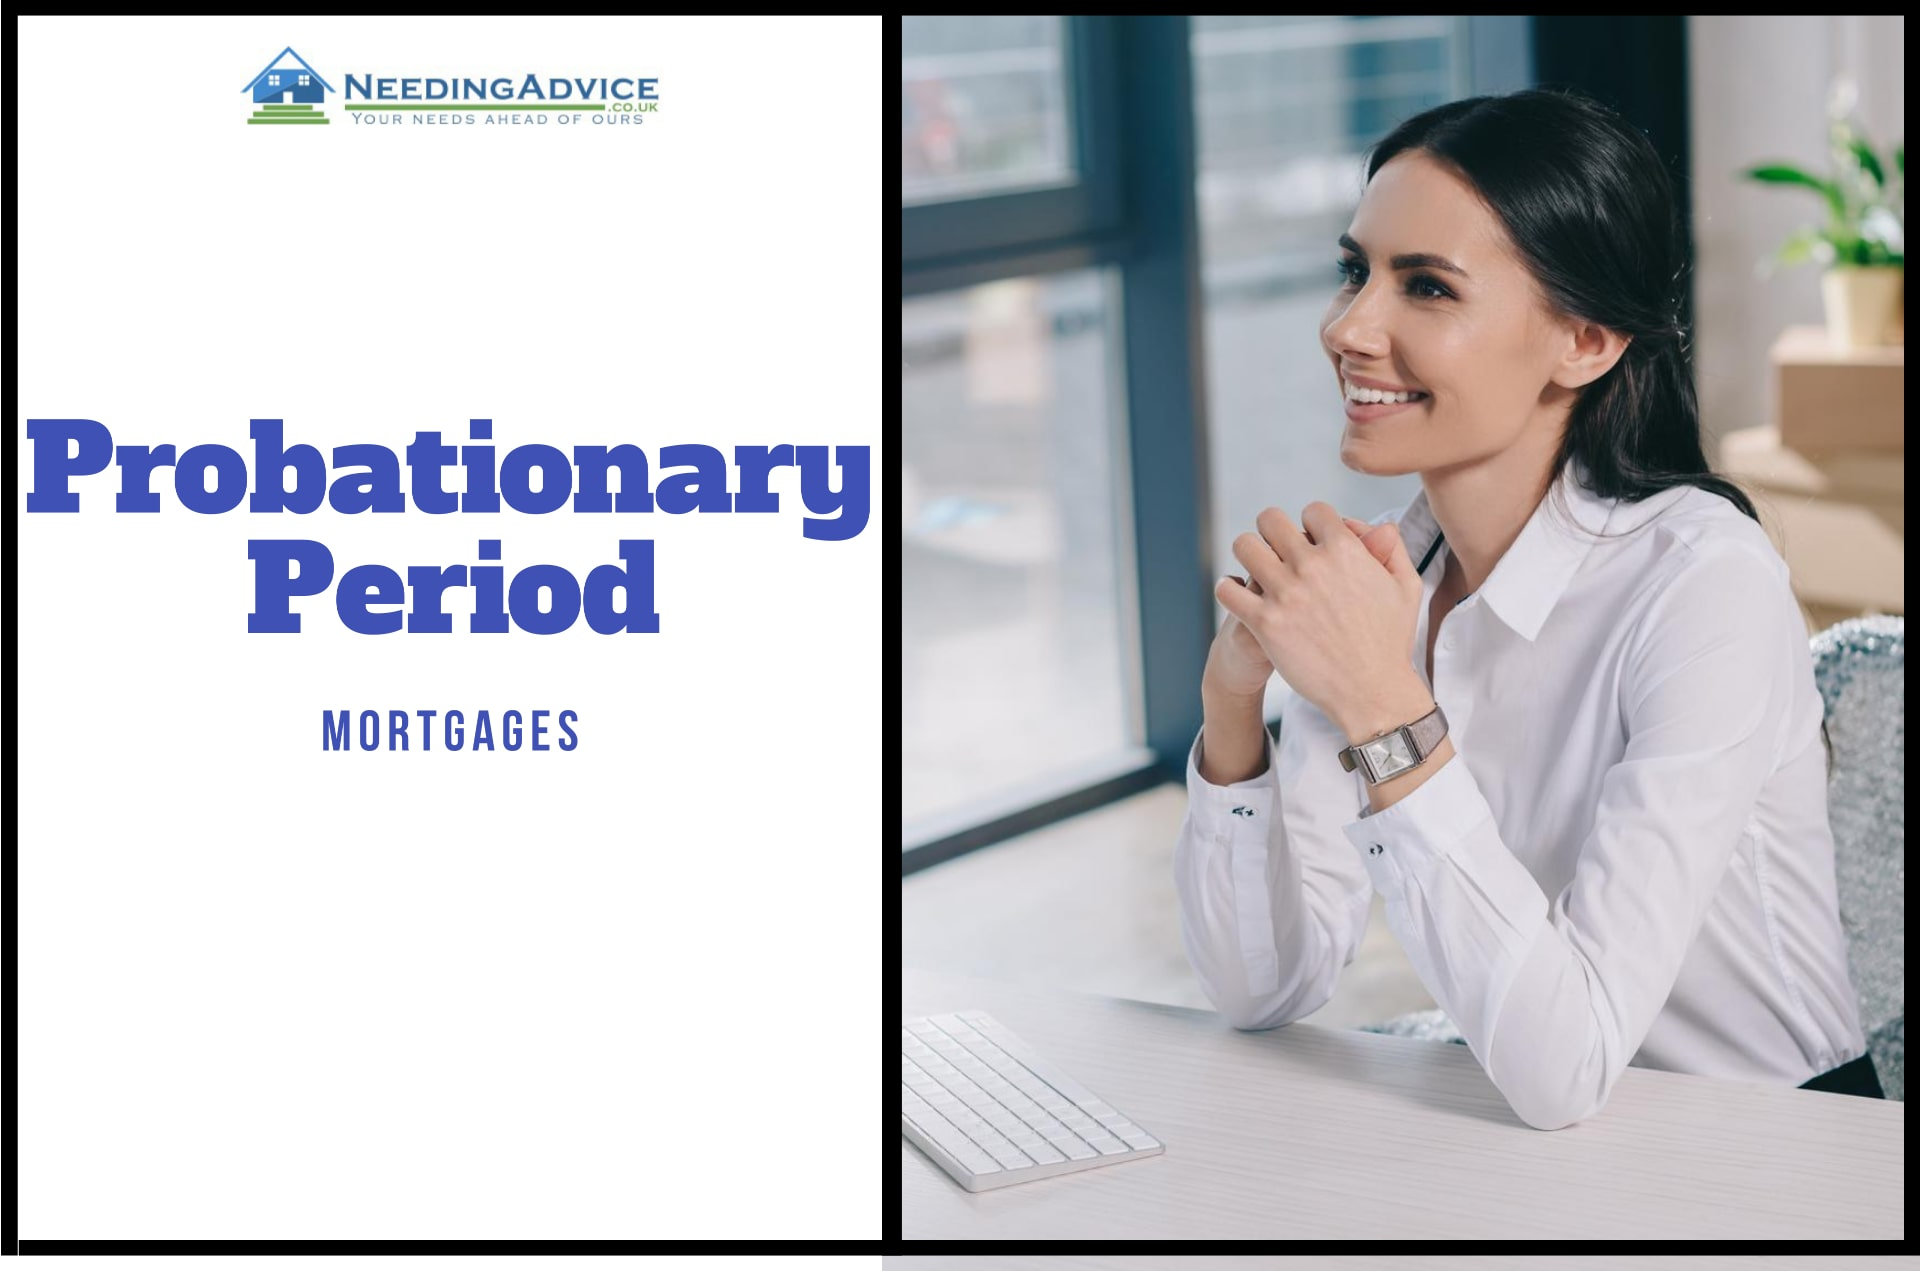 Probationary Period Mortgages